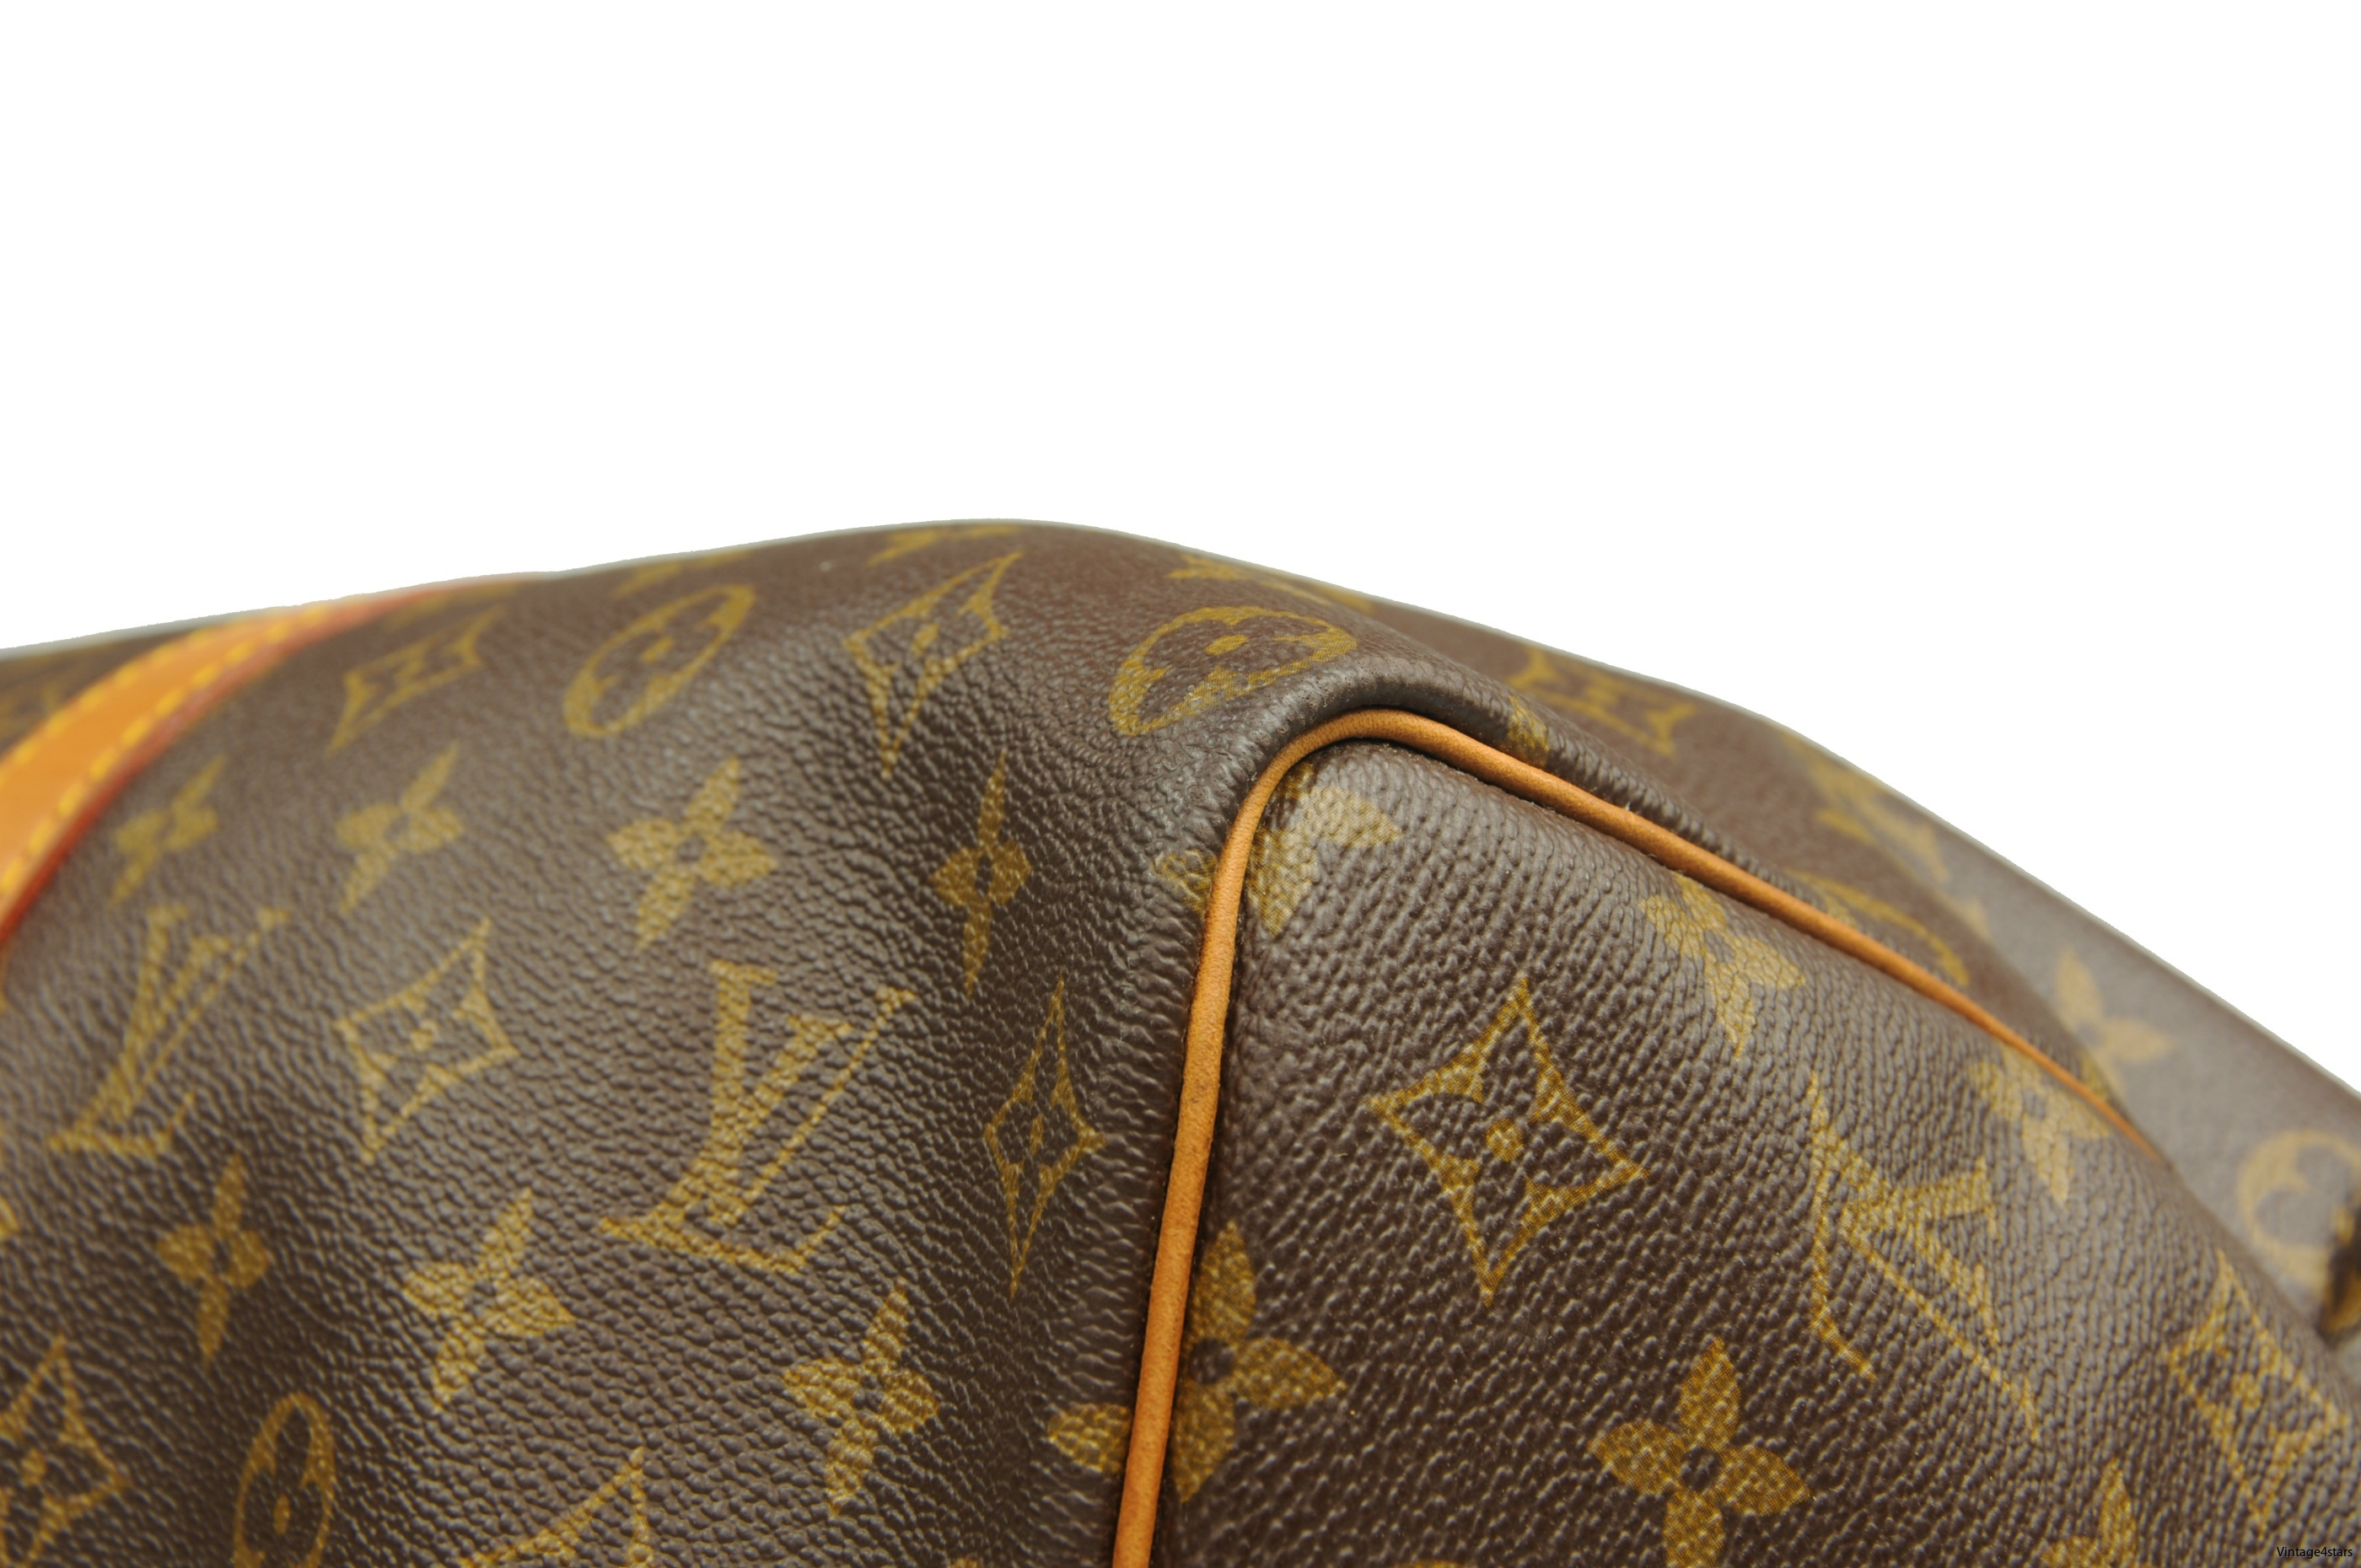 Louis Vuitton Keepall 50 303